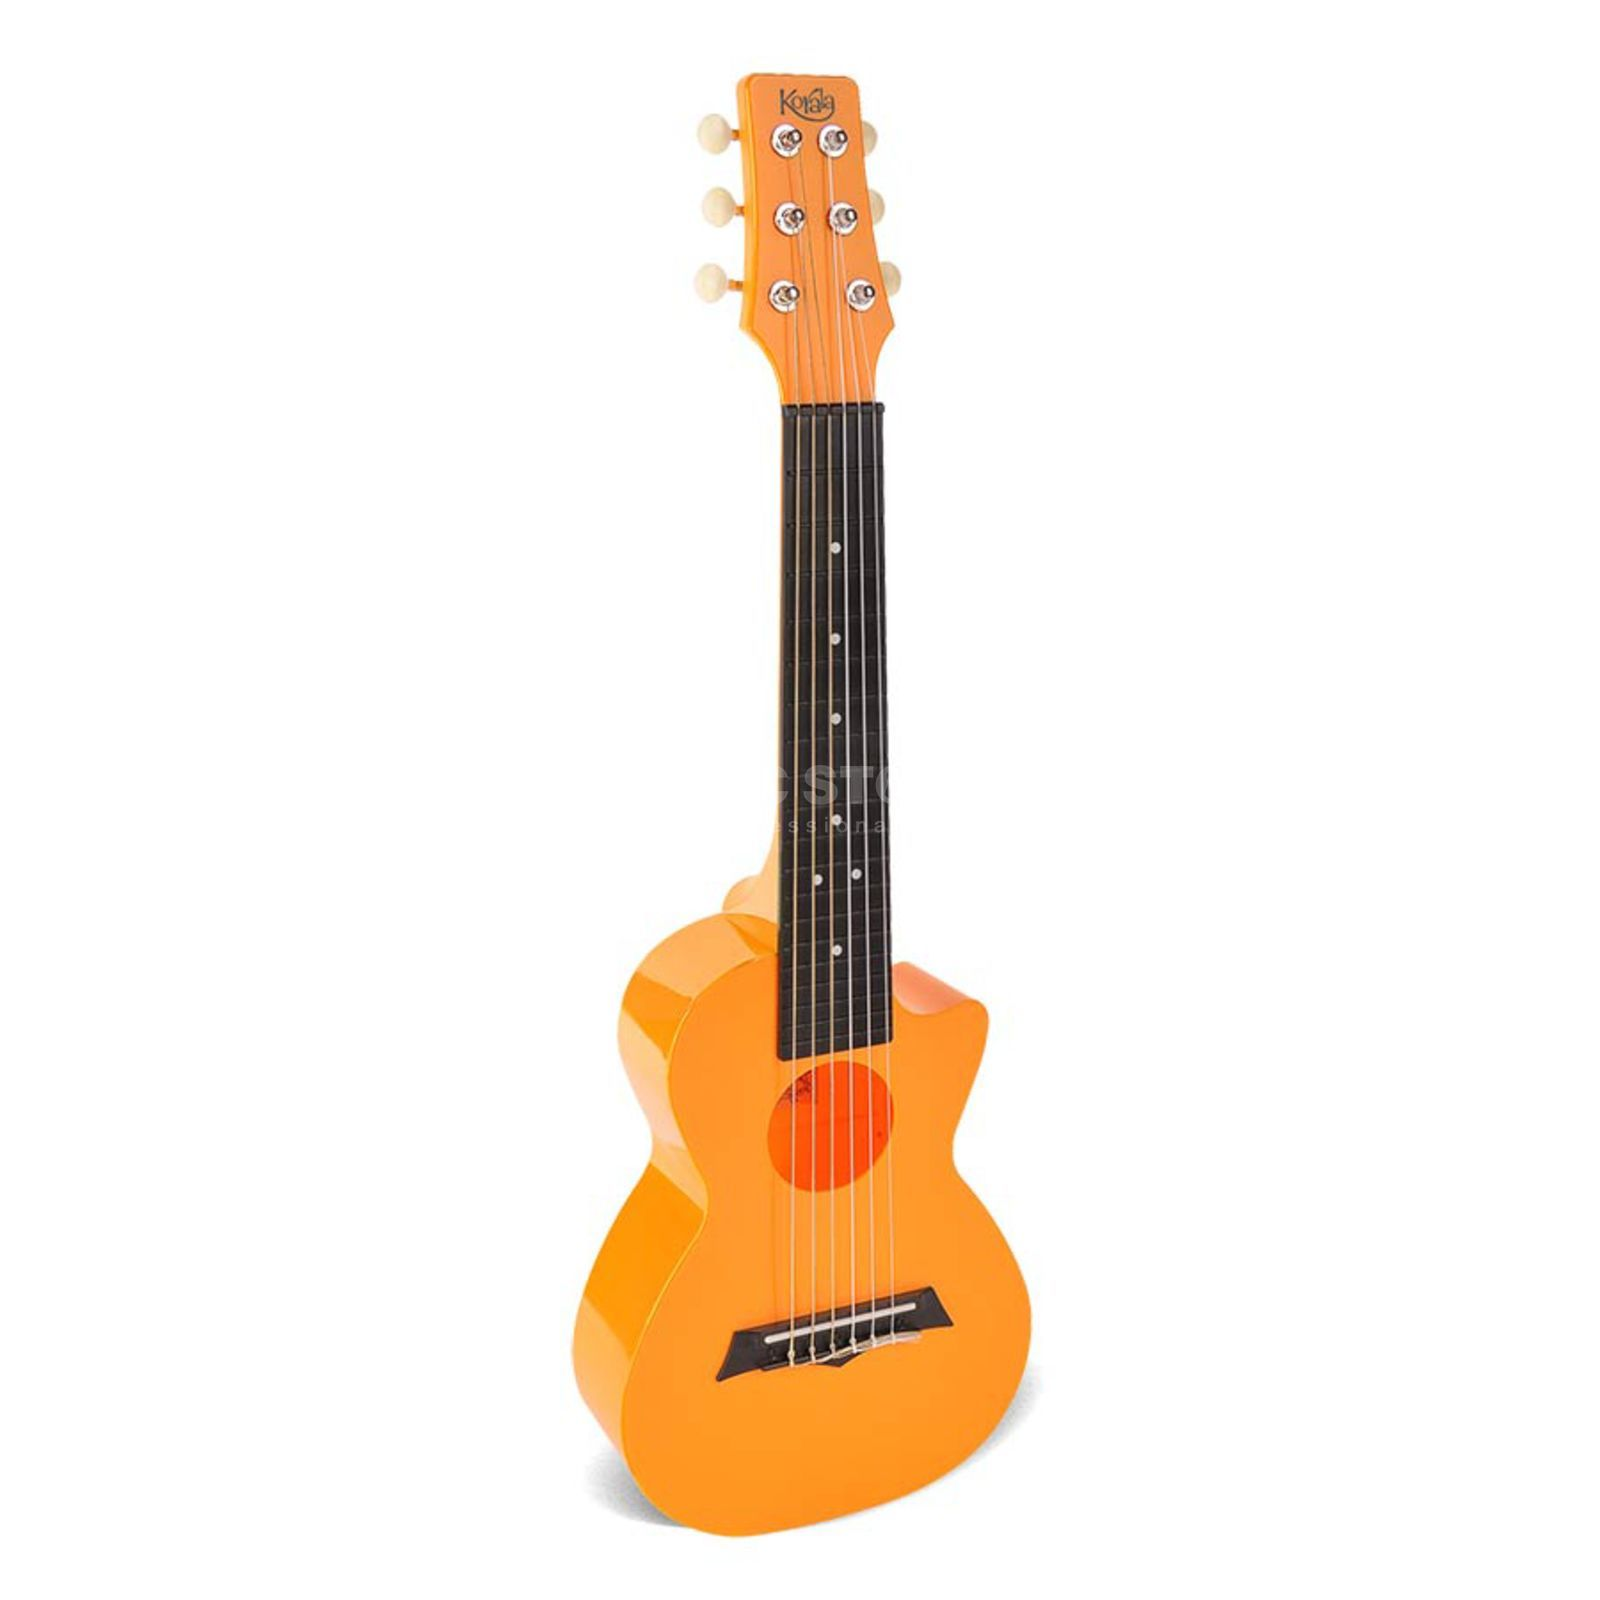 Korala Guitarlele PUG-40-OR orange Produktbild